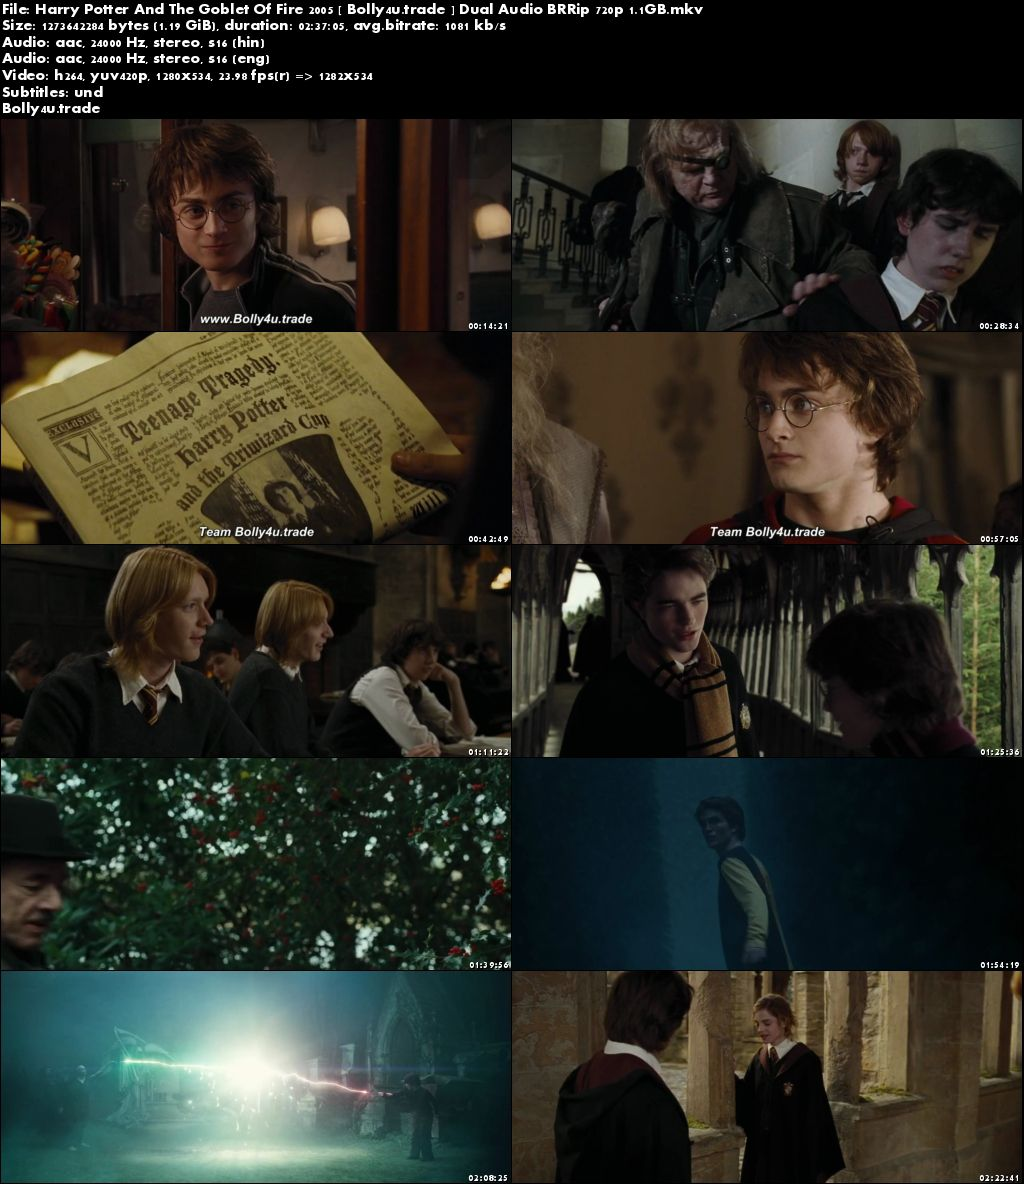 Harry Potter And The Goblet Of Fire 2005 BRRip 500Mb Hindi Dual Audio 480p Download